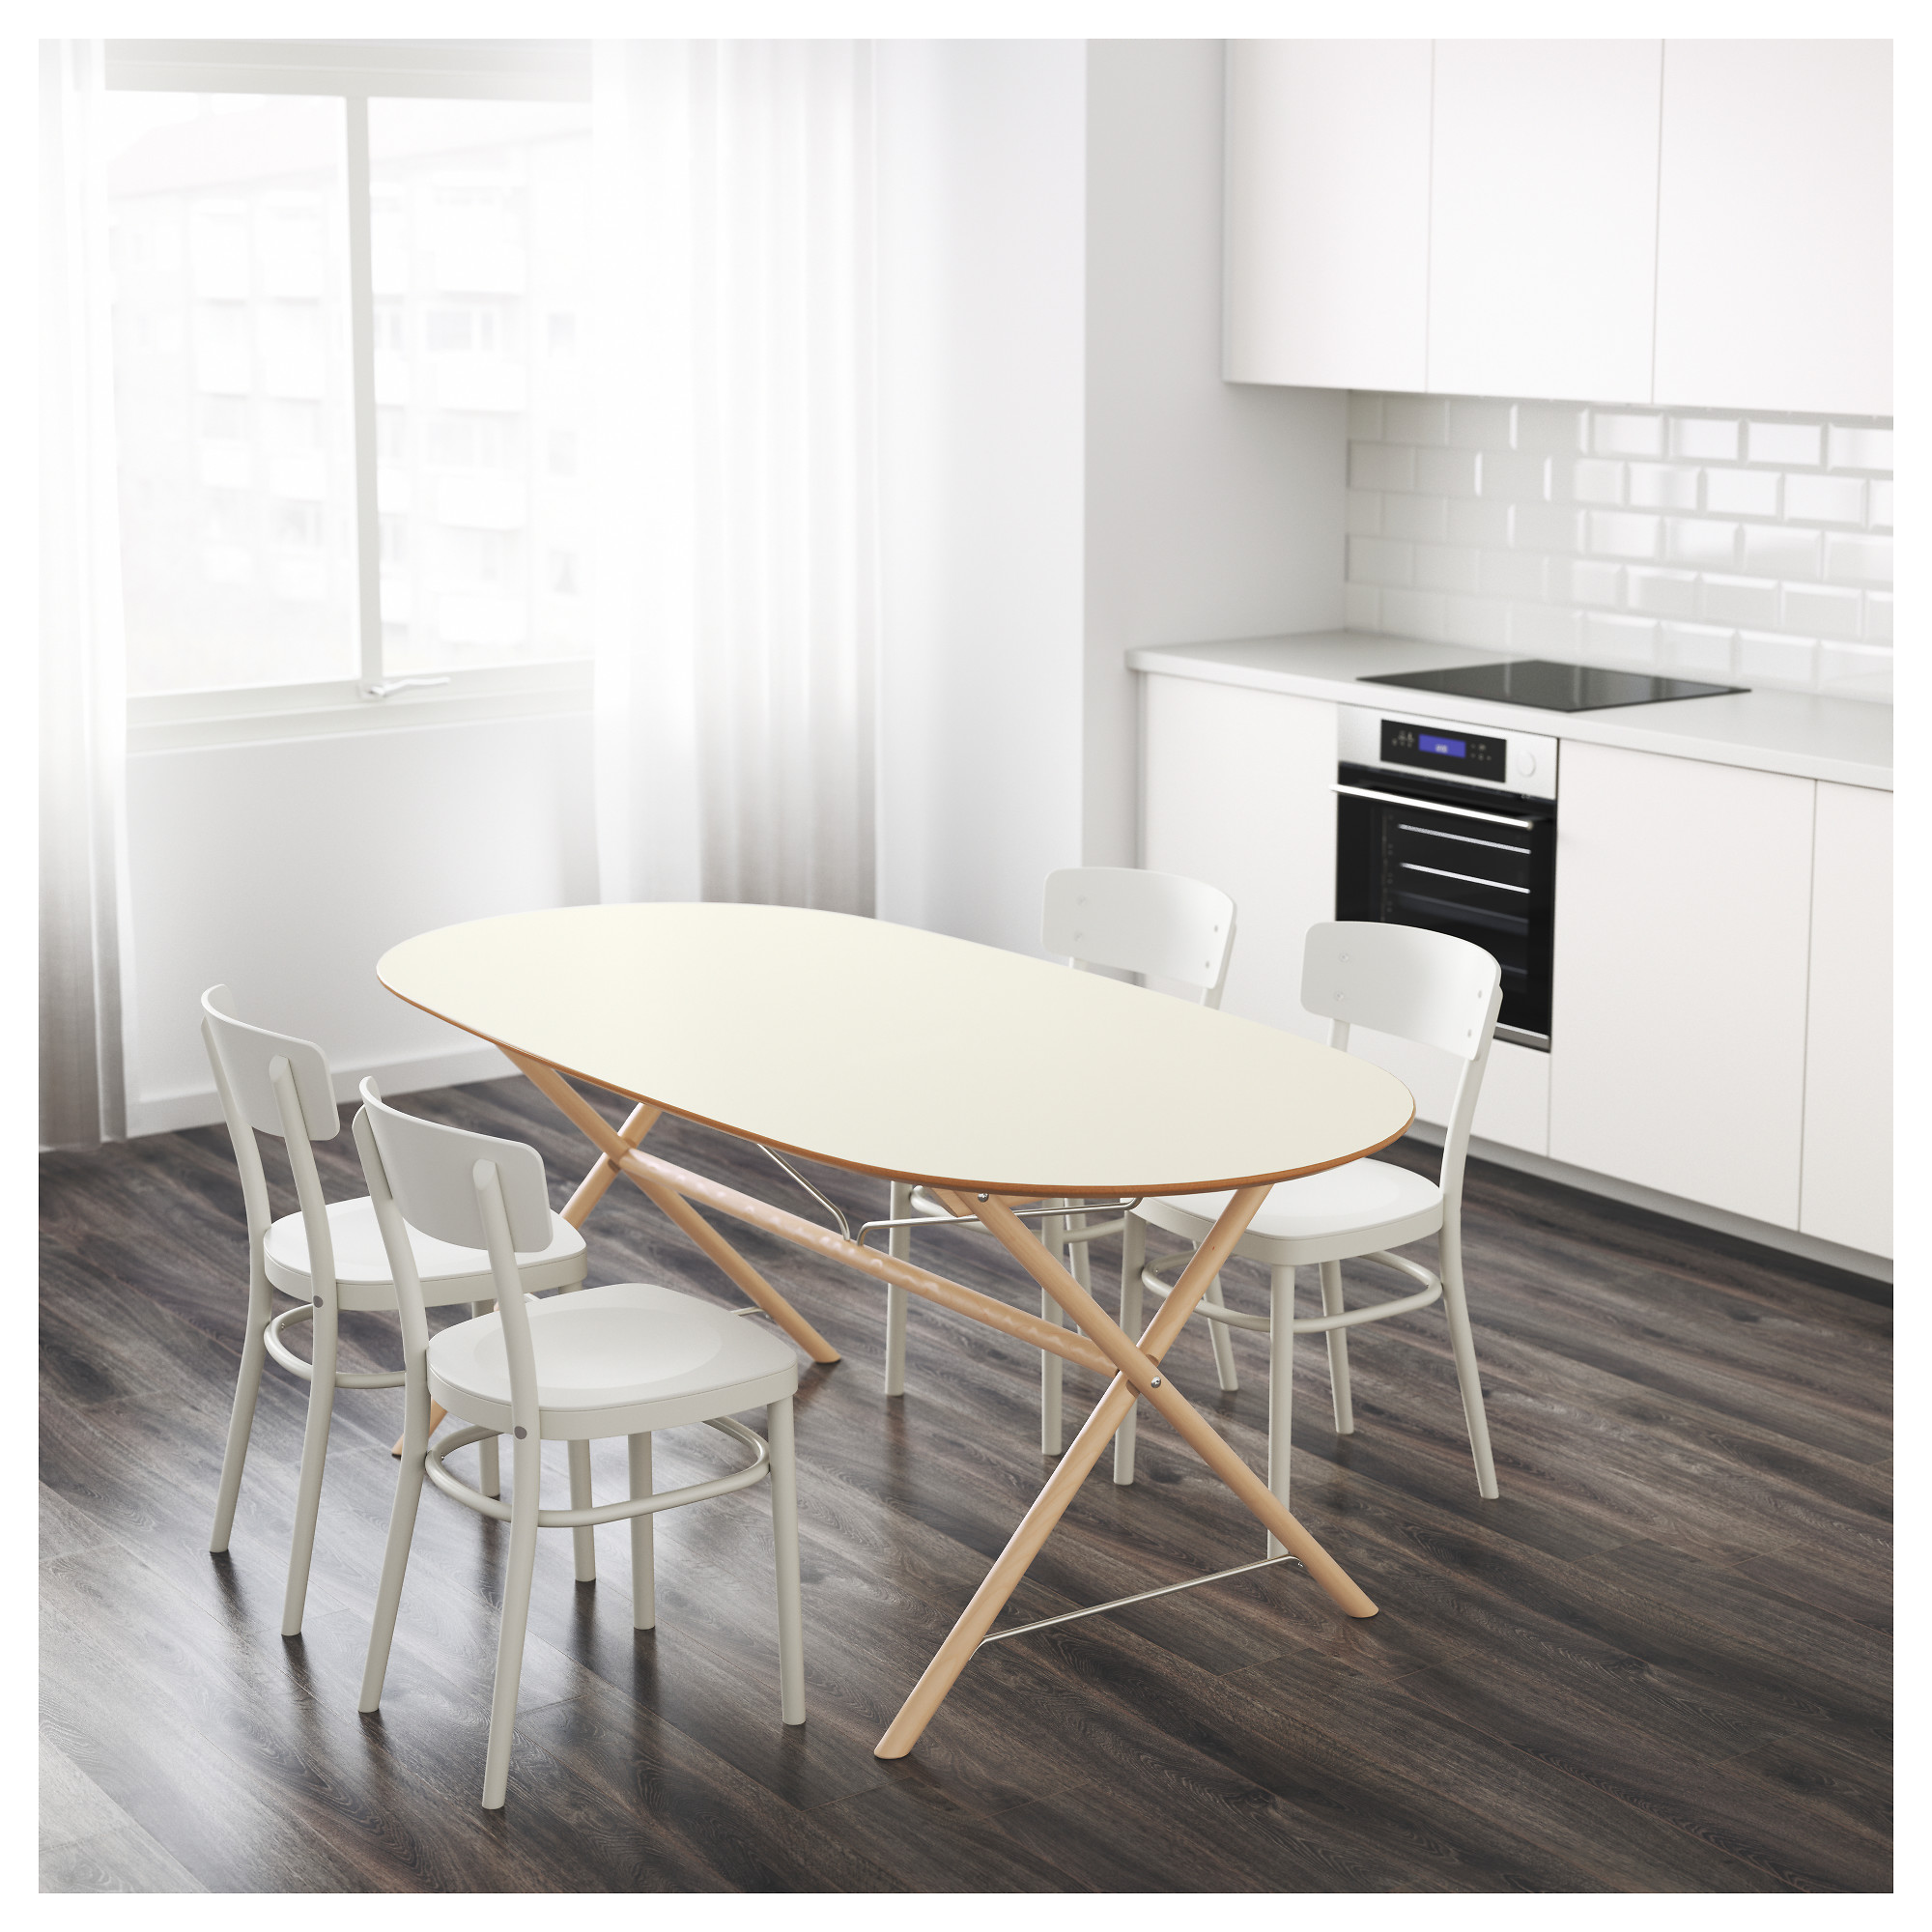 Table blanc laqu ikea best burs workstation ikea a long table top makes it e - Table blanc laque ikea ...